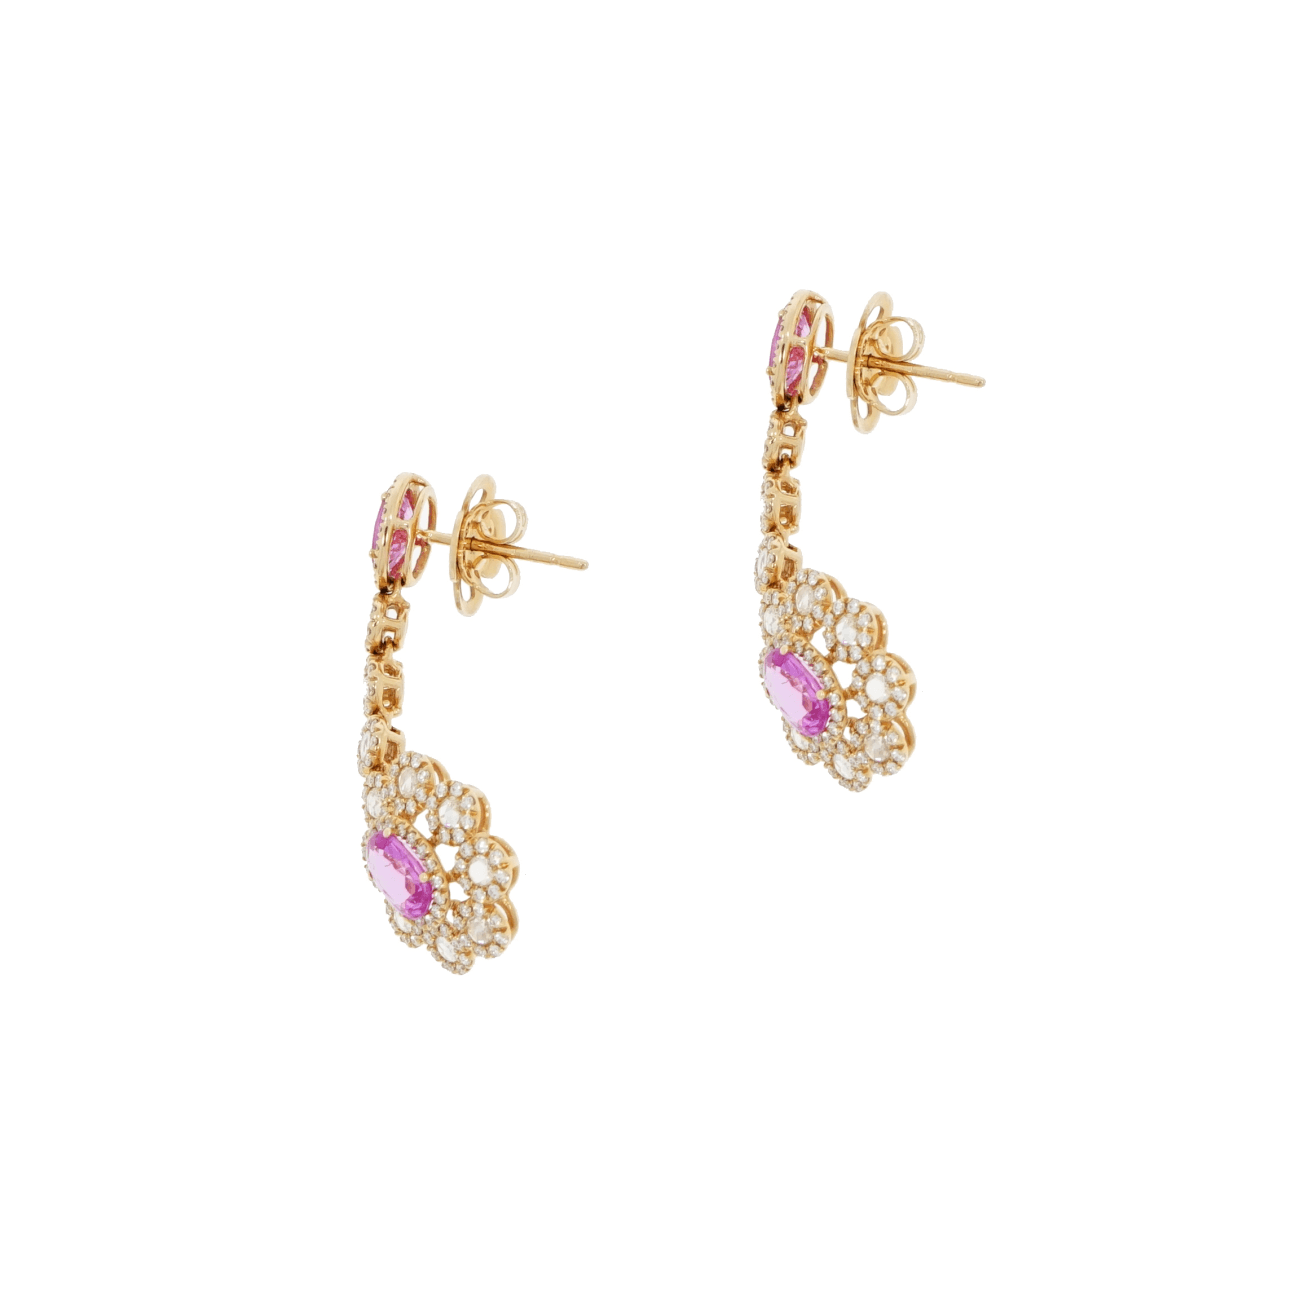 Leo Pizzo Jewelry - Leo Pizzo Pink Sapphire And Diamond Dangling earrings | Manfredi Jewels